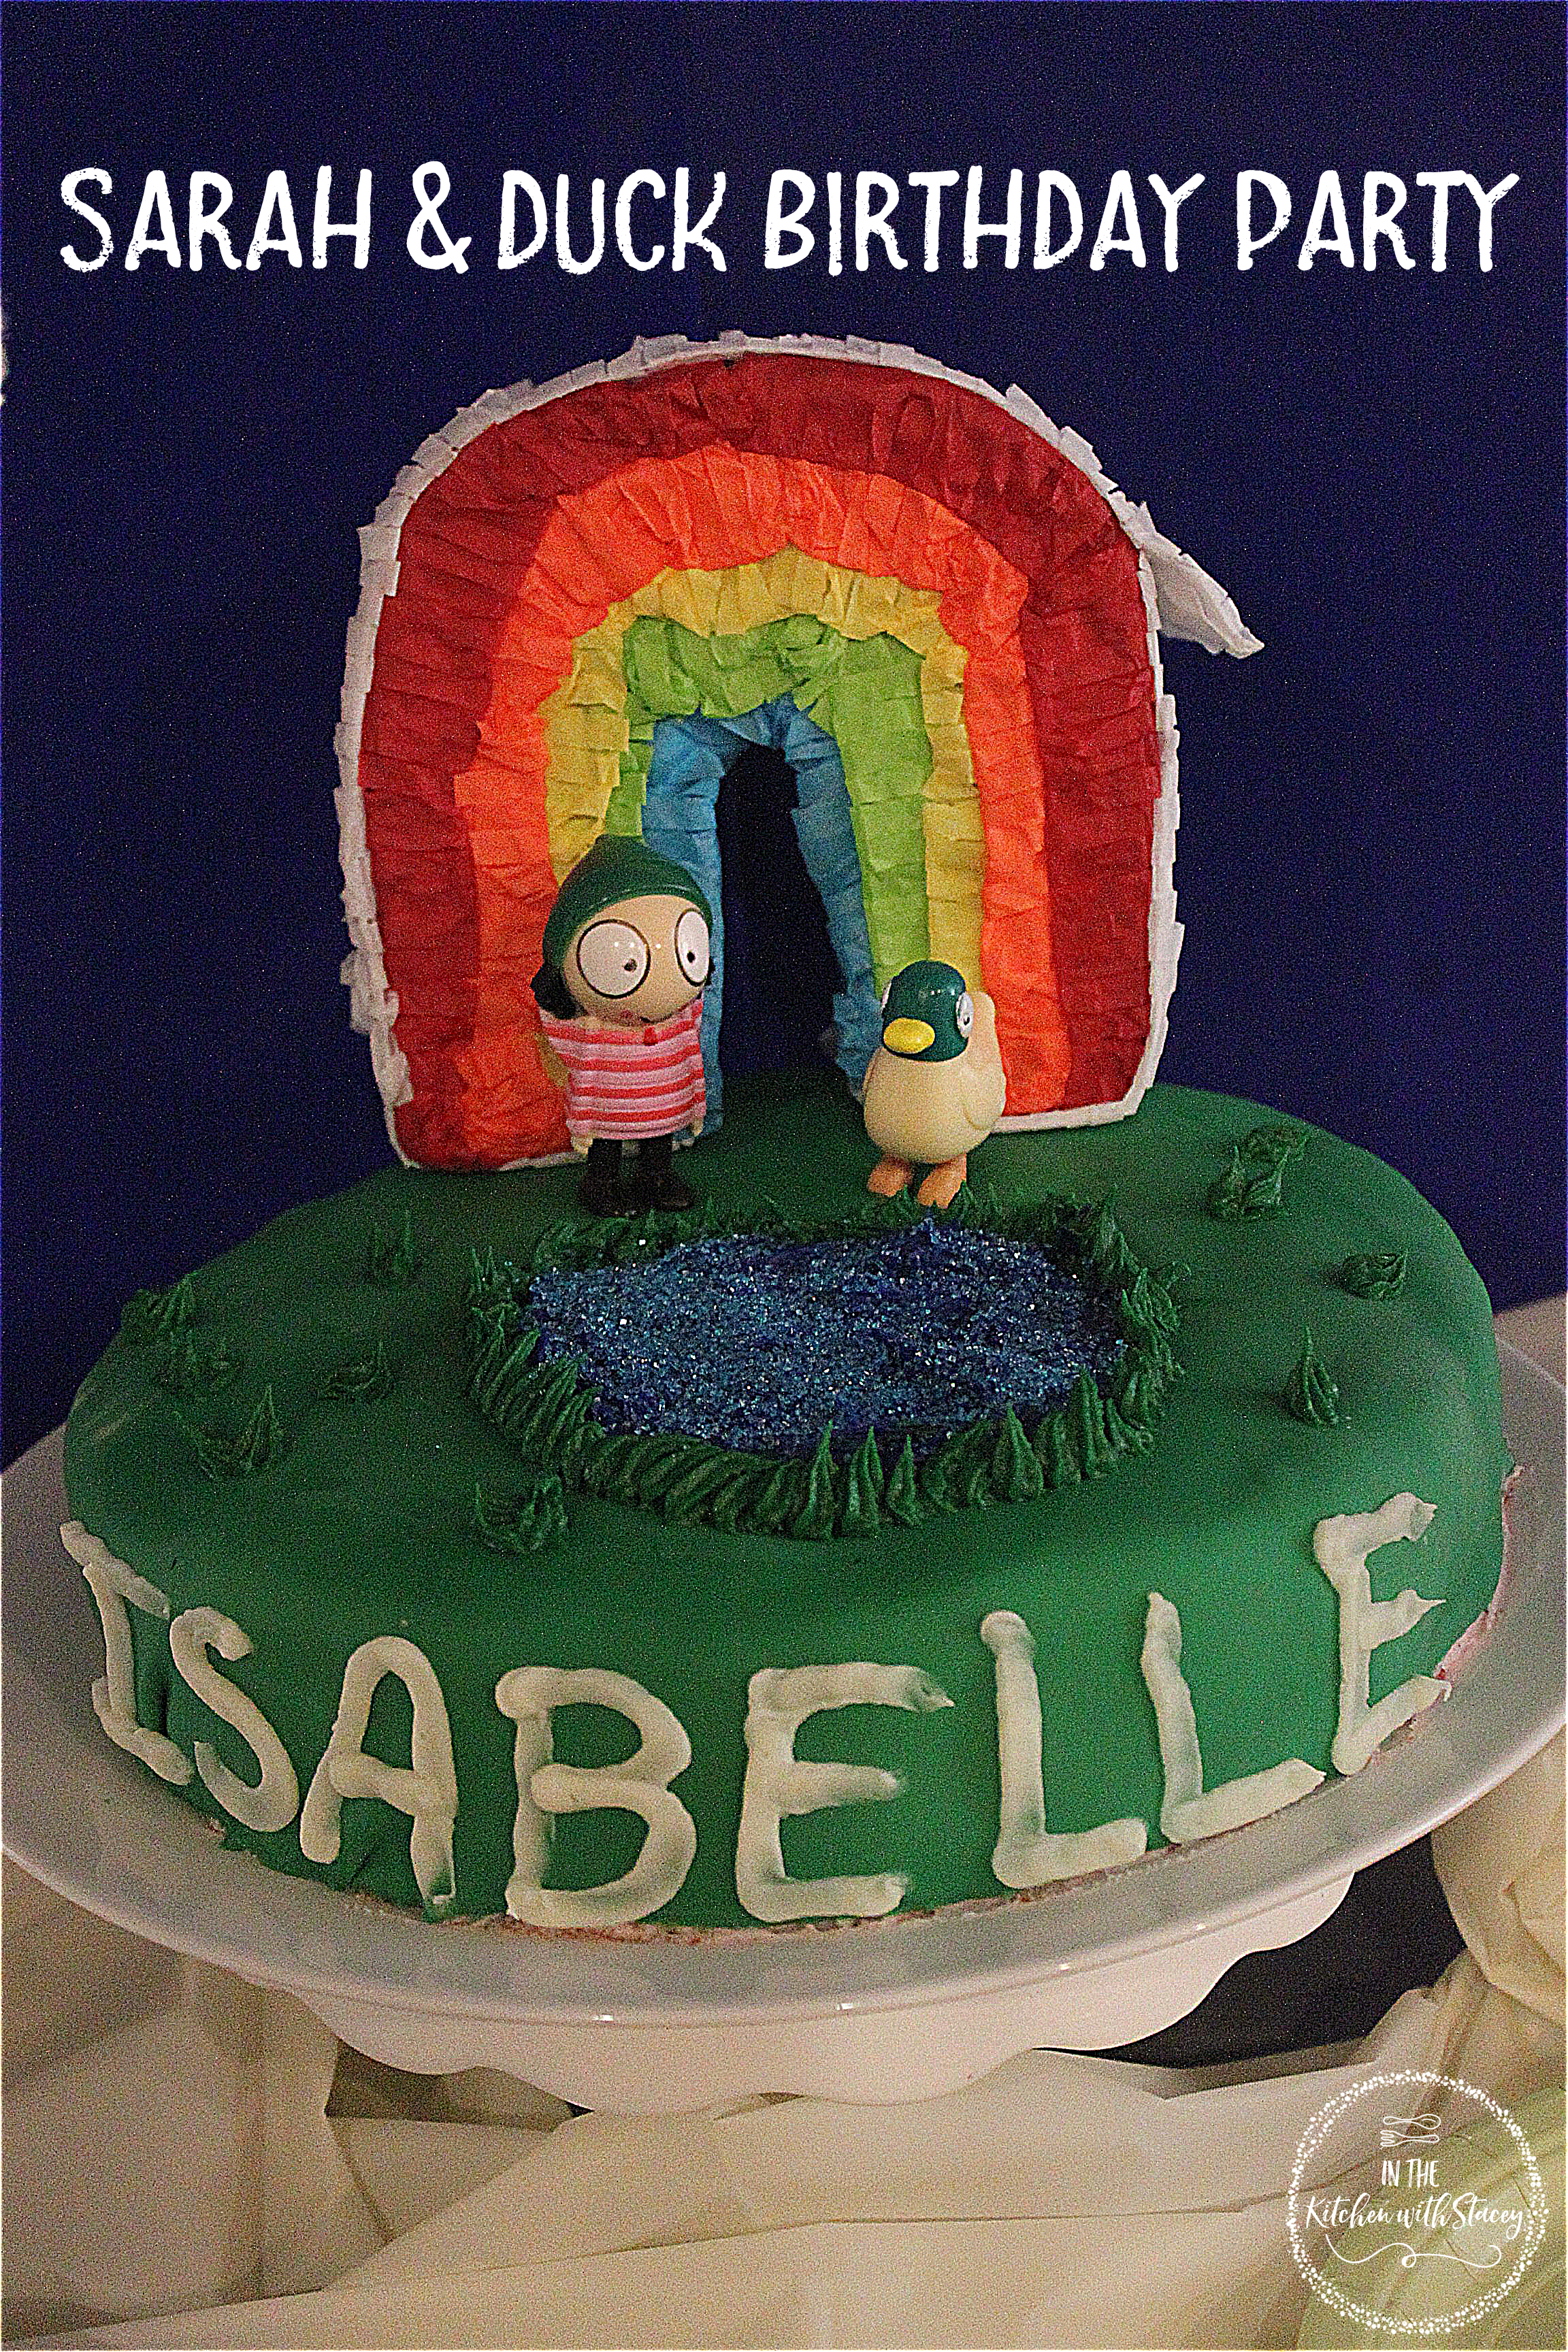 Sarah Duck Birthday Party In The Kitchen With Stacey Duck Birthday Sarah Duck Duck Cake